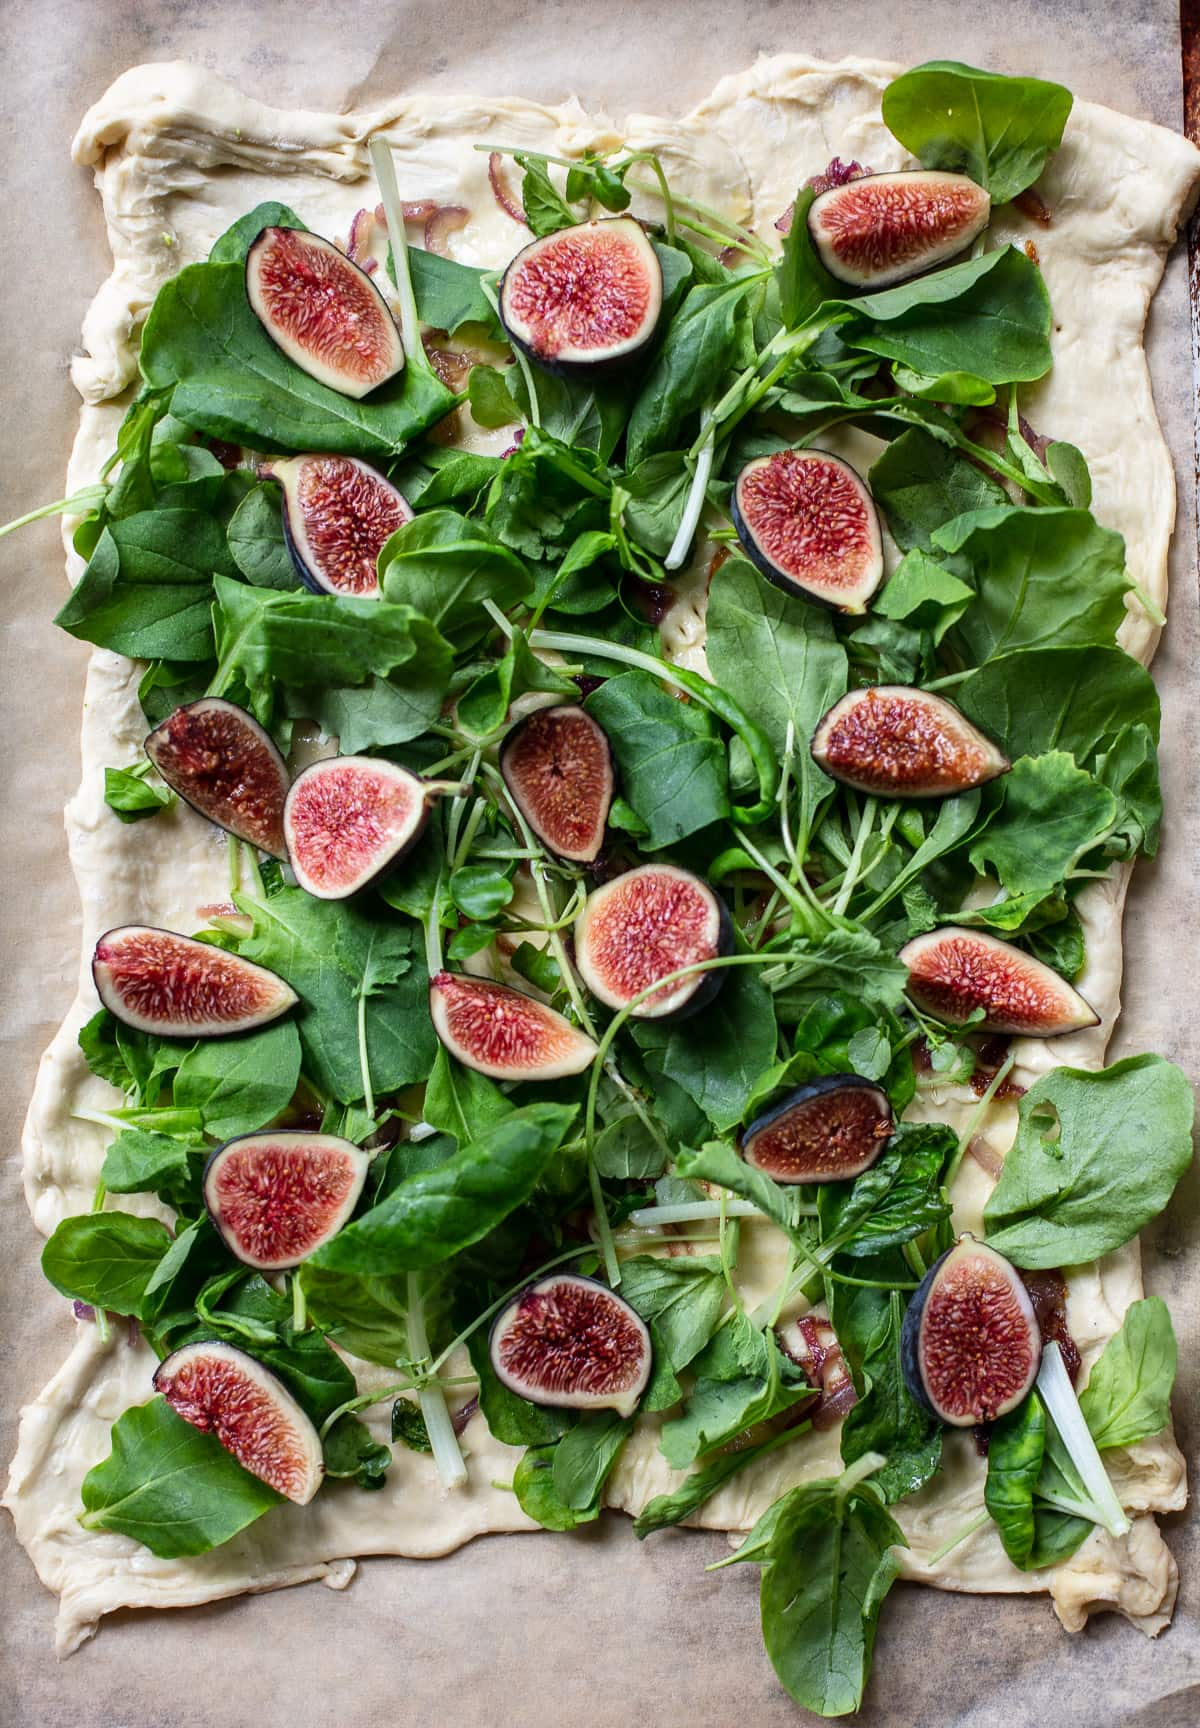 Puff pastry appetizer on a piece of parchment paper, topped with wedges of fresh figs, blue cheese and arugula greens.